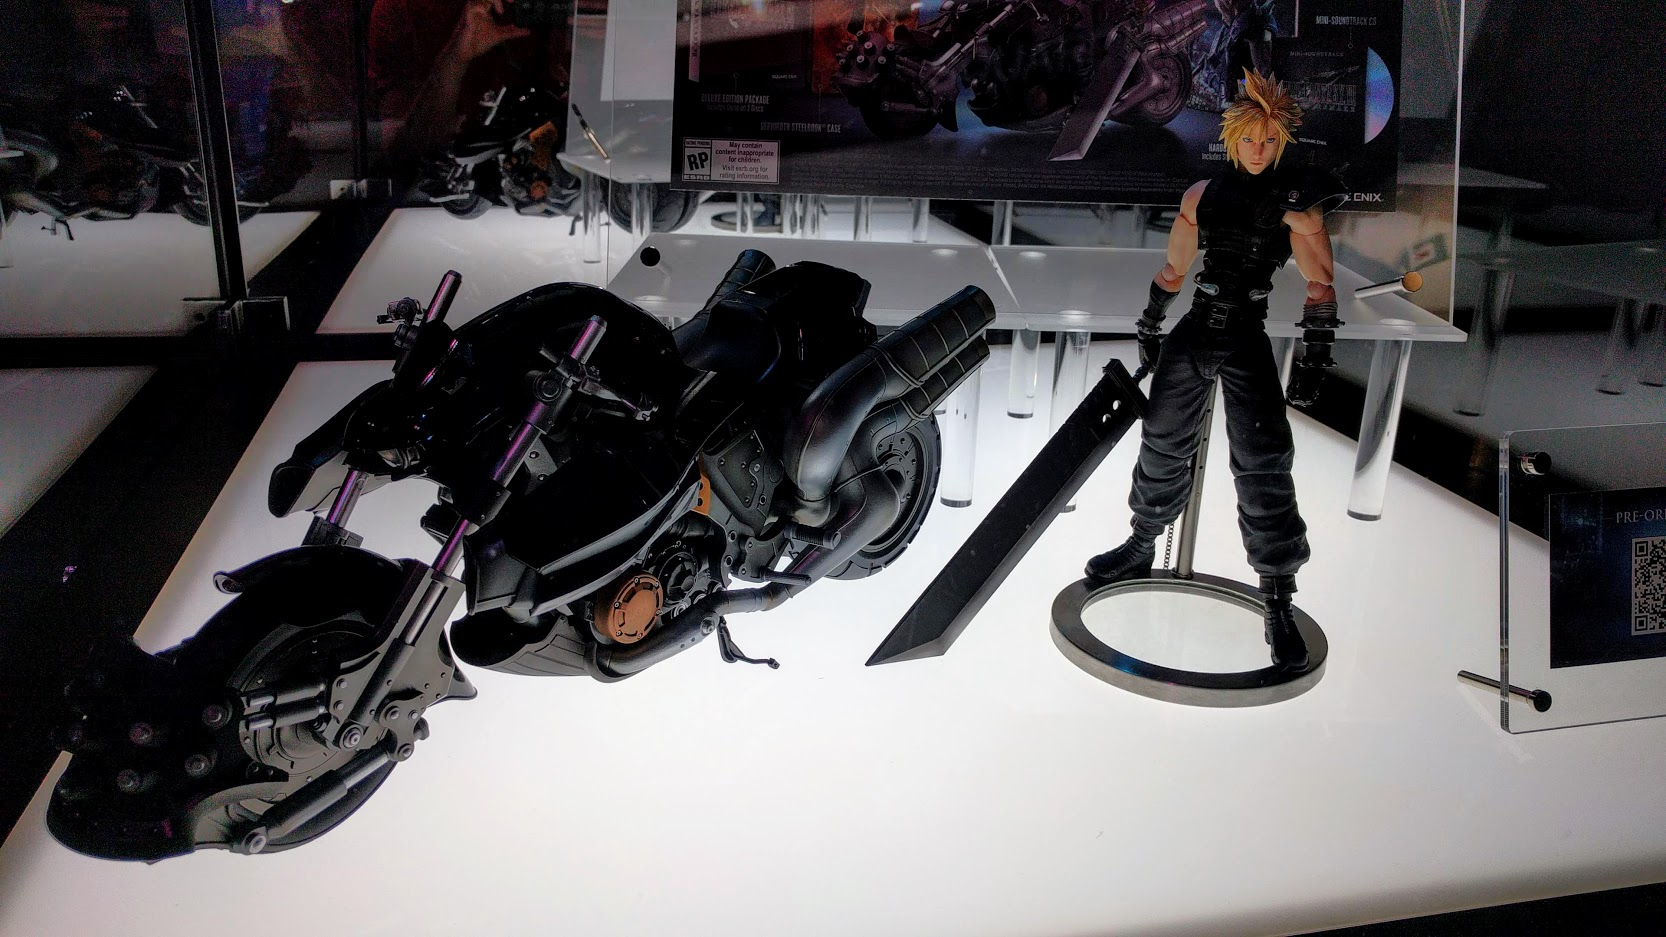 Final Fantasy VII collector's edition figurine cloud bike